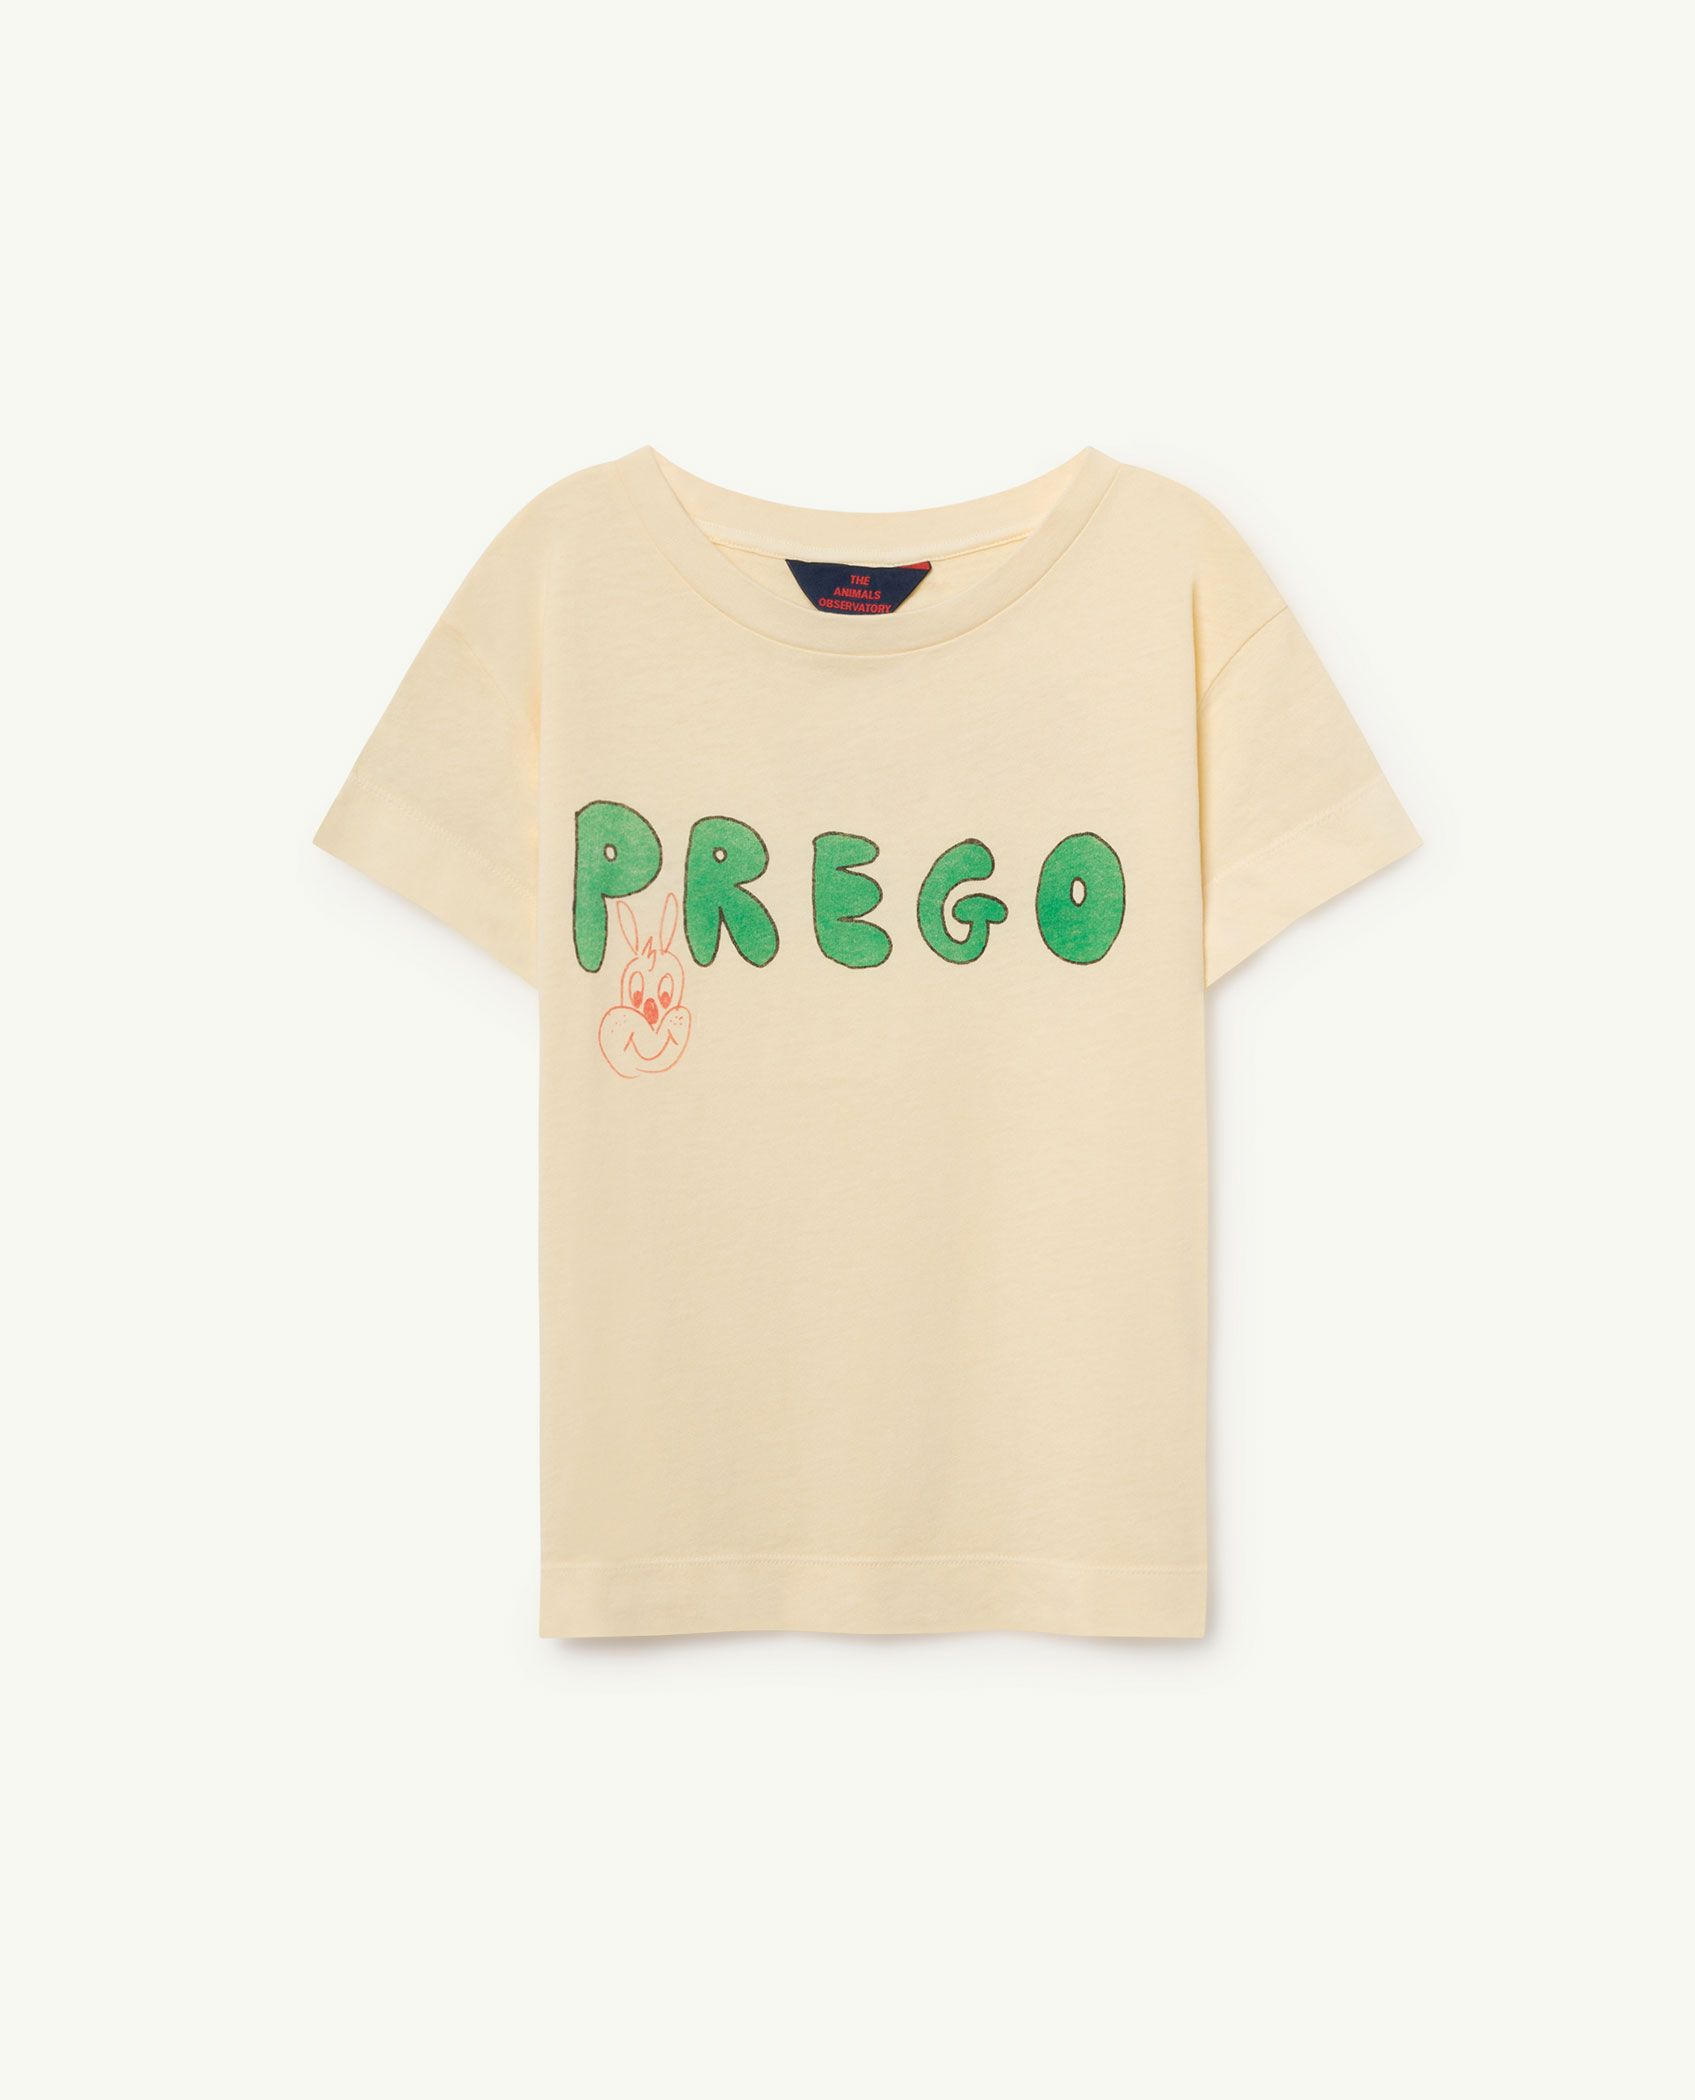 Prego Rooster T-Shirt img-1